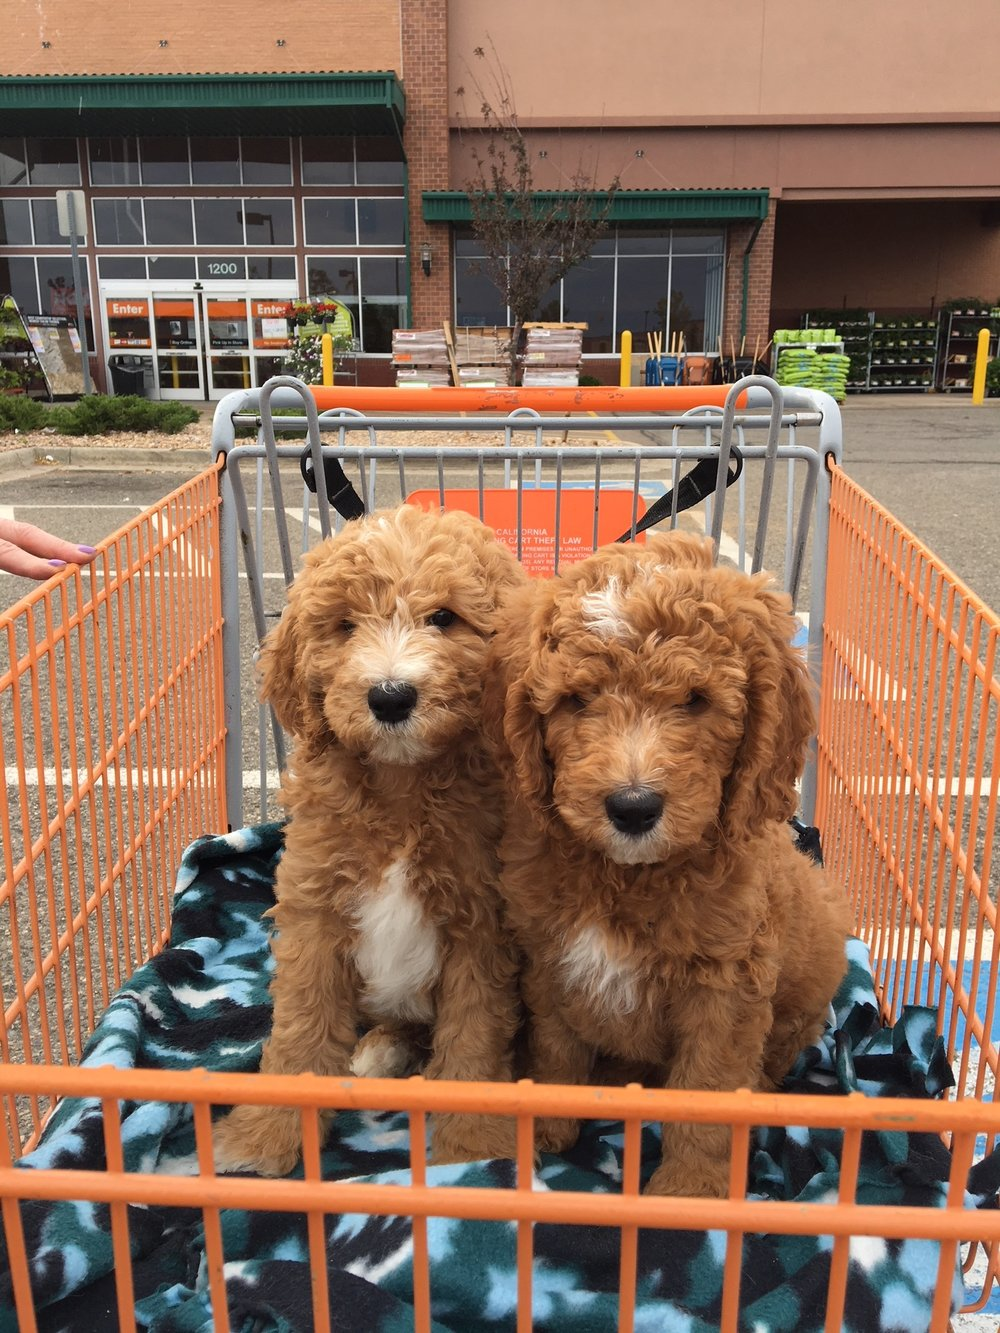 It's easy to take your pup to all sorts of stores in carts. In our experience, pups exposed to carts are comfortable later on around wheelchairs.